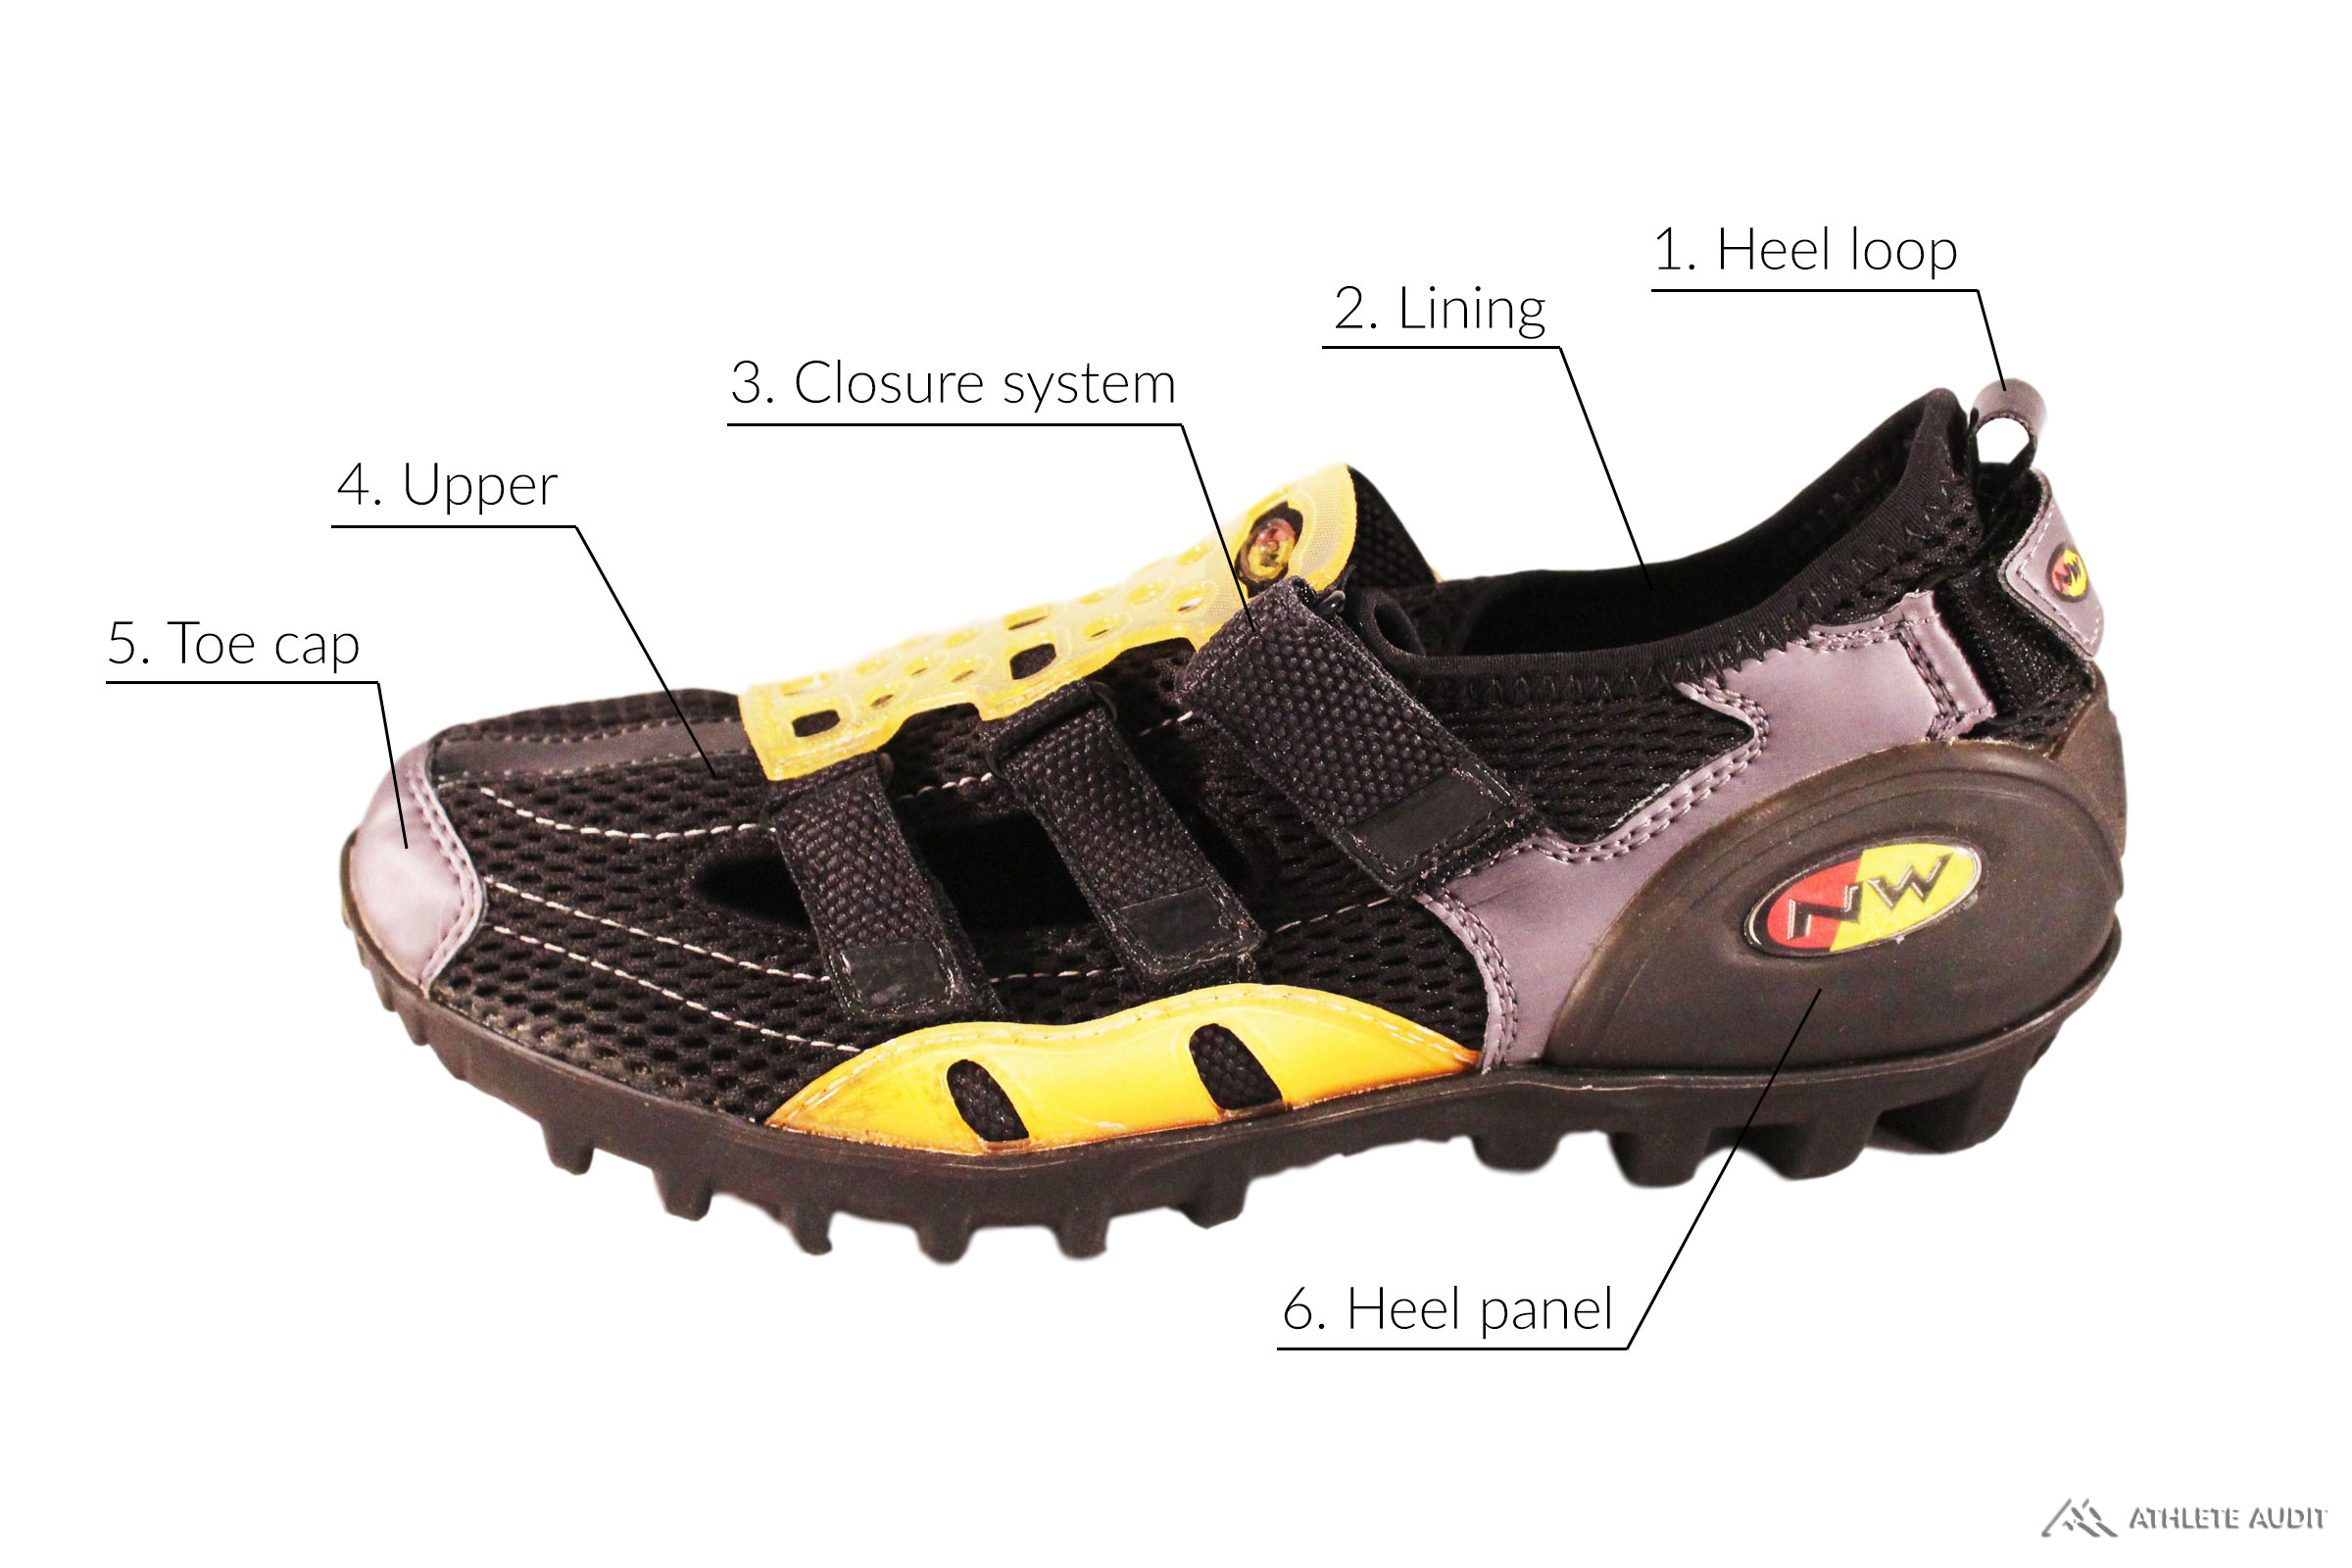 Parts of a Mountain Biking Shoe - Outer - Anatomy of an Athletic Shoe - Athlete Audit